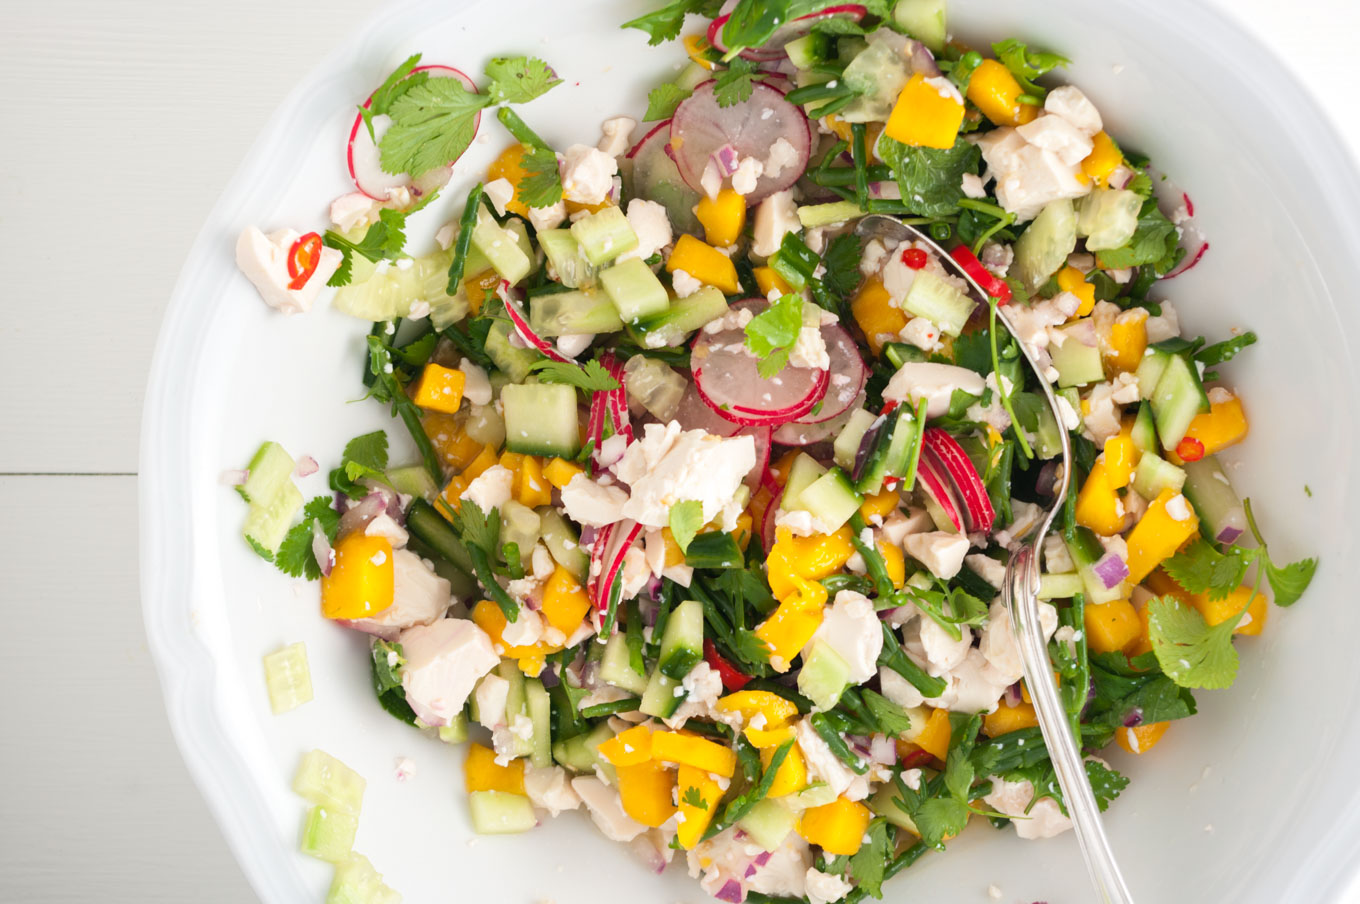 Silken Tofu Ceviche with Mango – This vibrant salad recipe is sweet, tart and spicy, with citrus-cured silken tofu, mango, samphire and herbs – a super healthy, hugely flavourful vegetarian and vegan ceviche. By @deliciouscratch | deliciousfromscratch.com